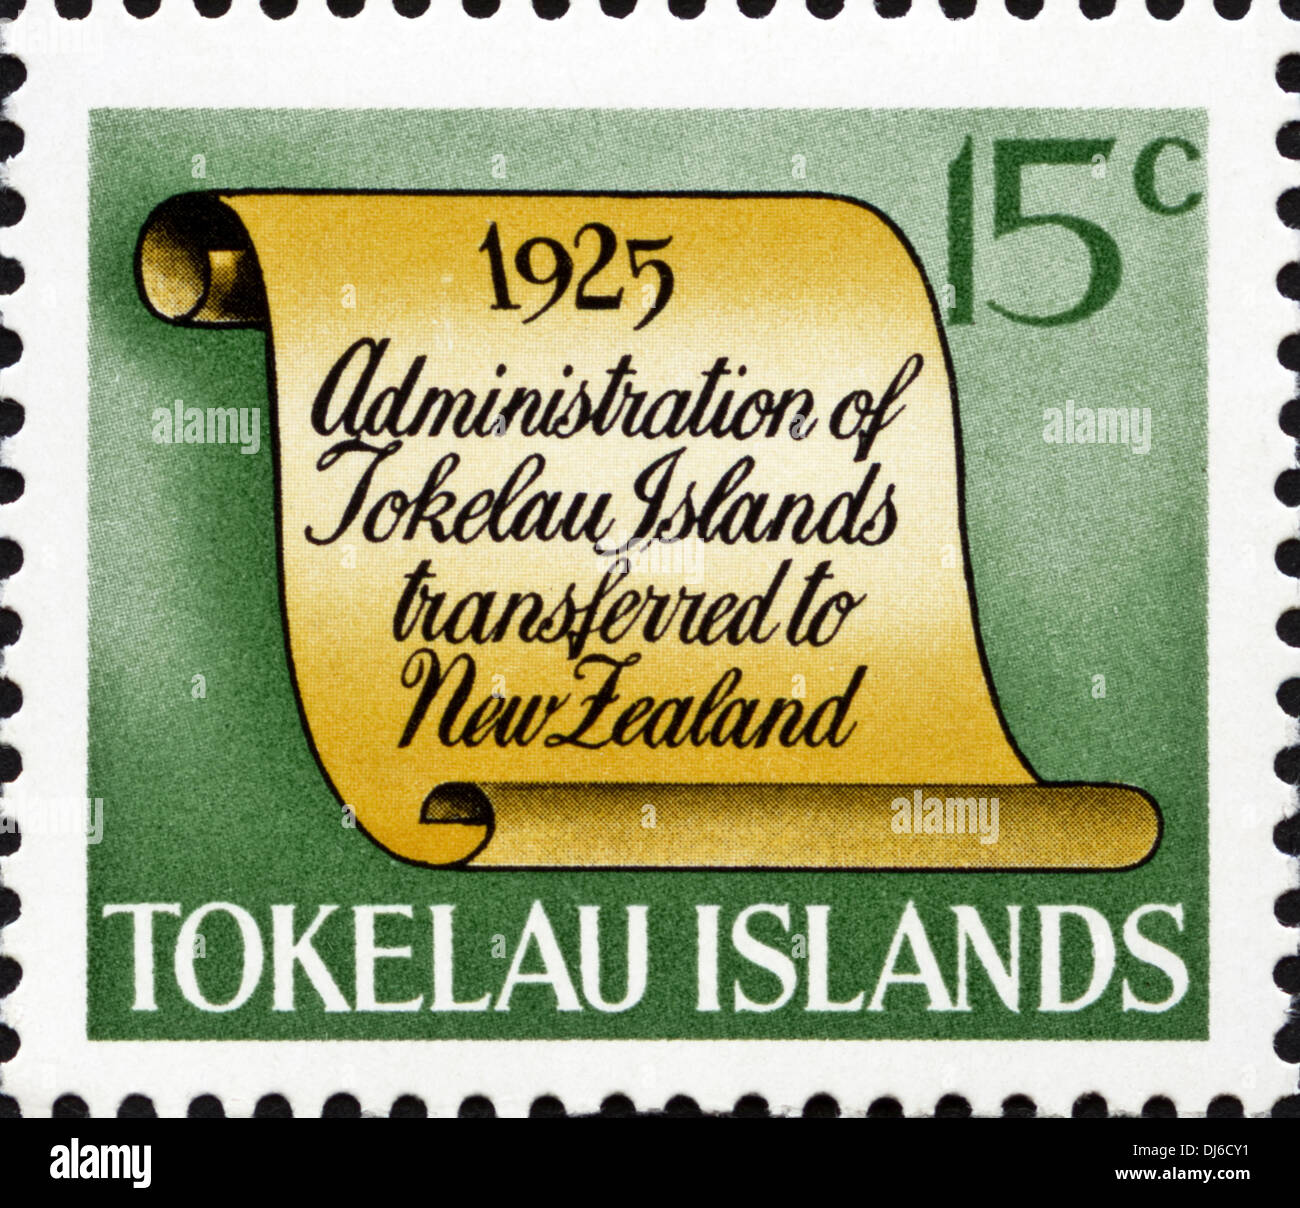 postage stamp Tokelau Islands 15c featuring 1925 significant date in island history dated 1969 - Stock Image